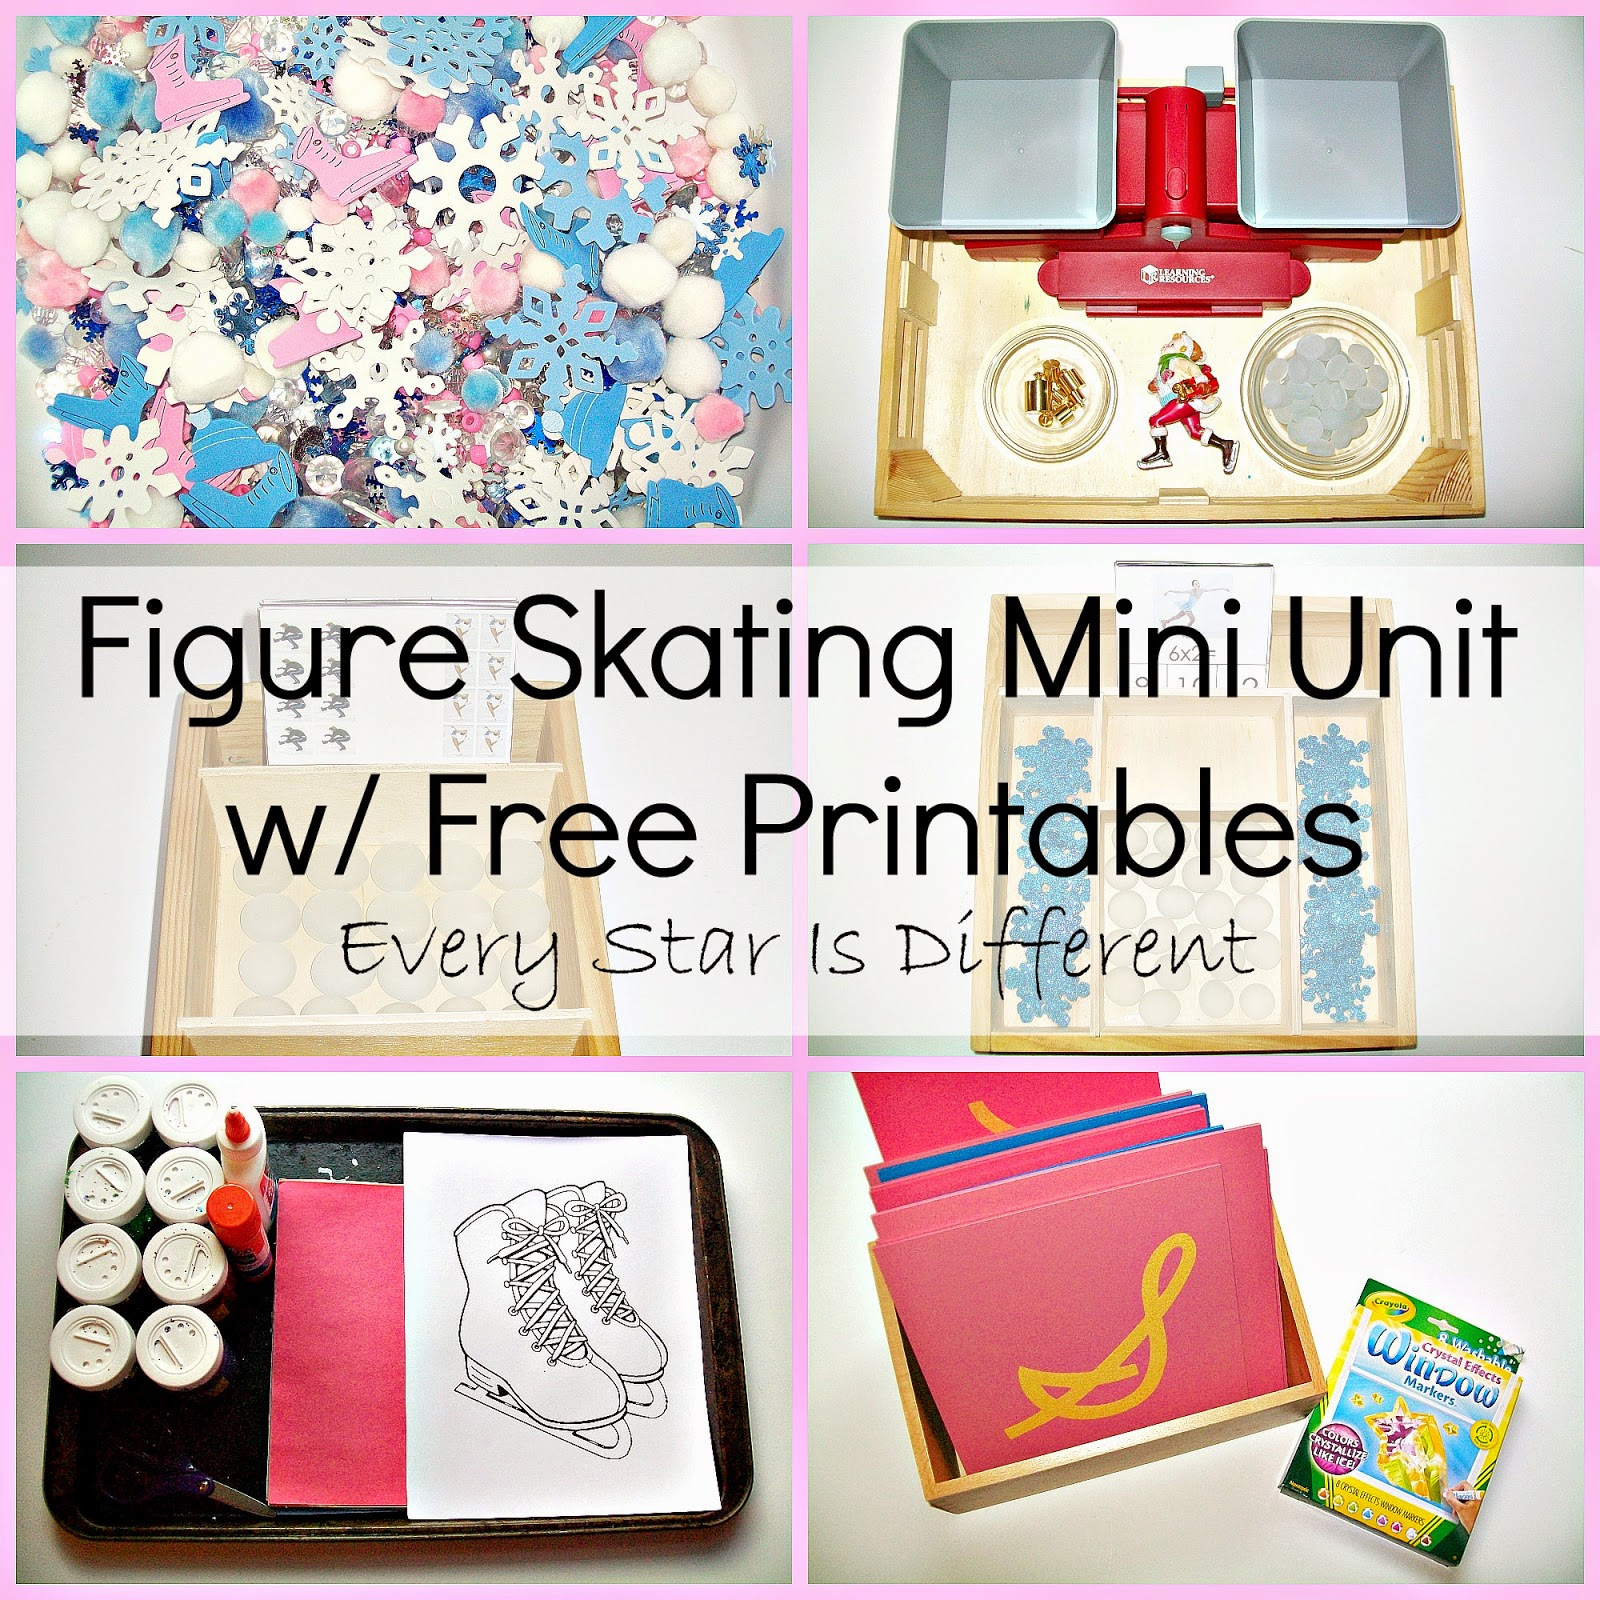 Figure Skating Mini Unit